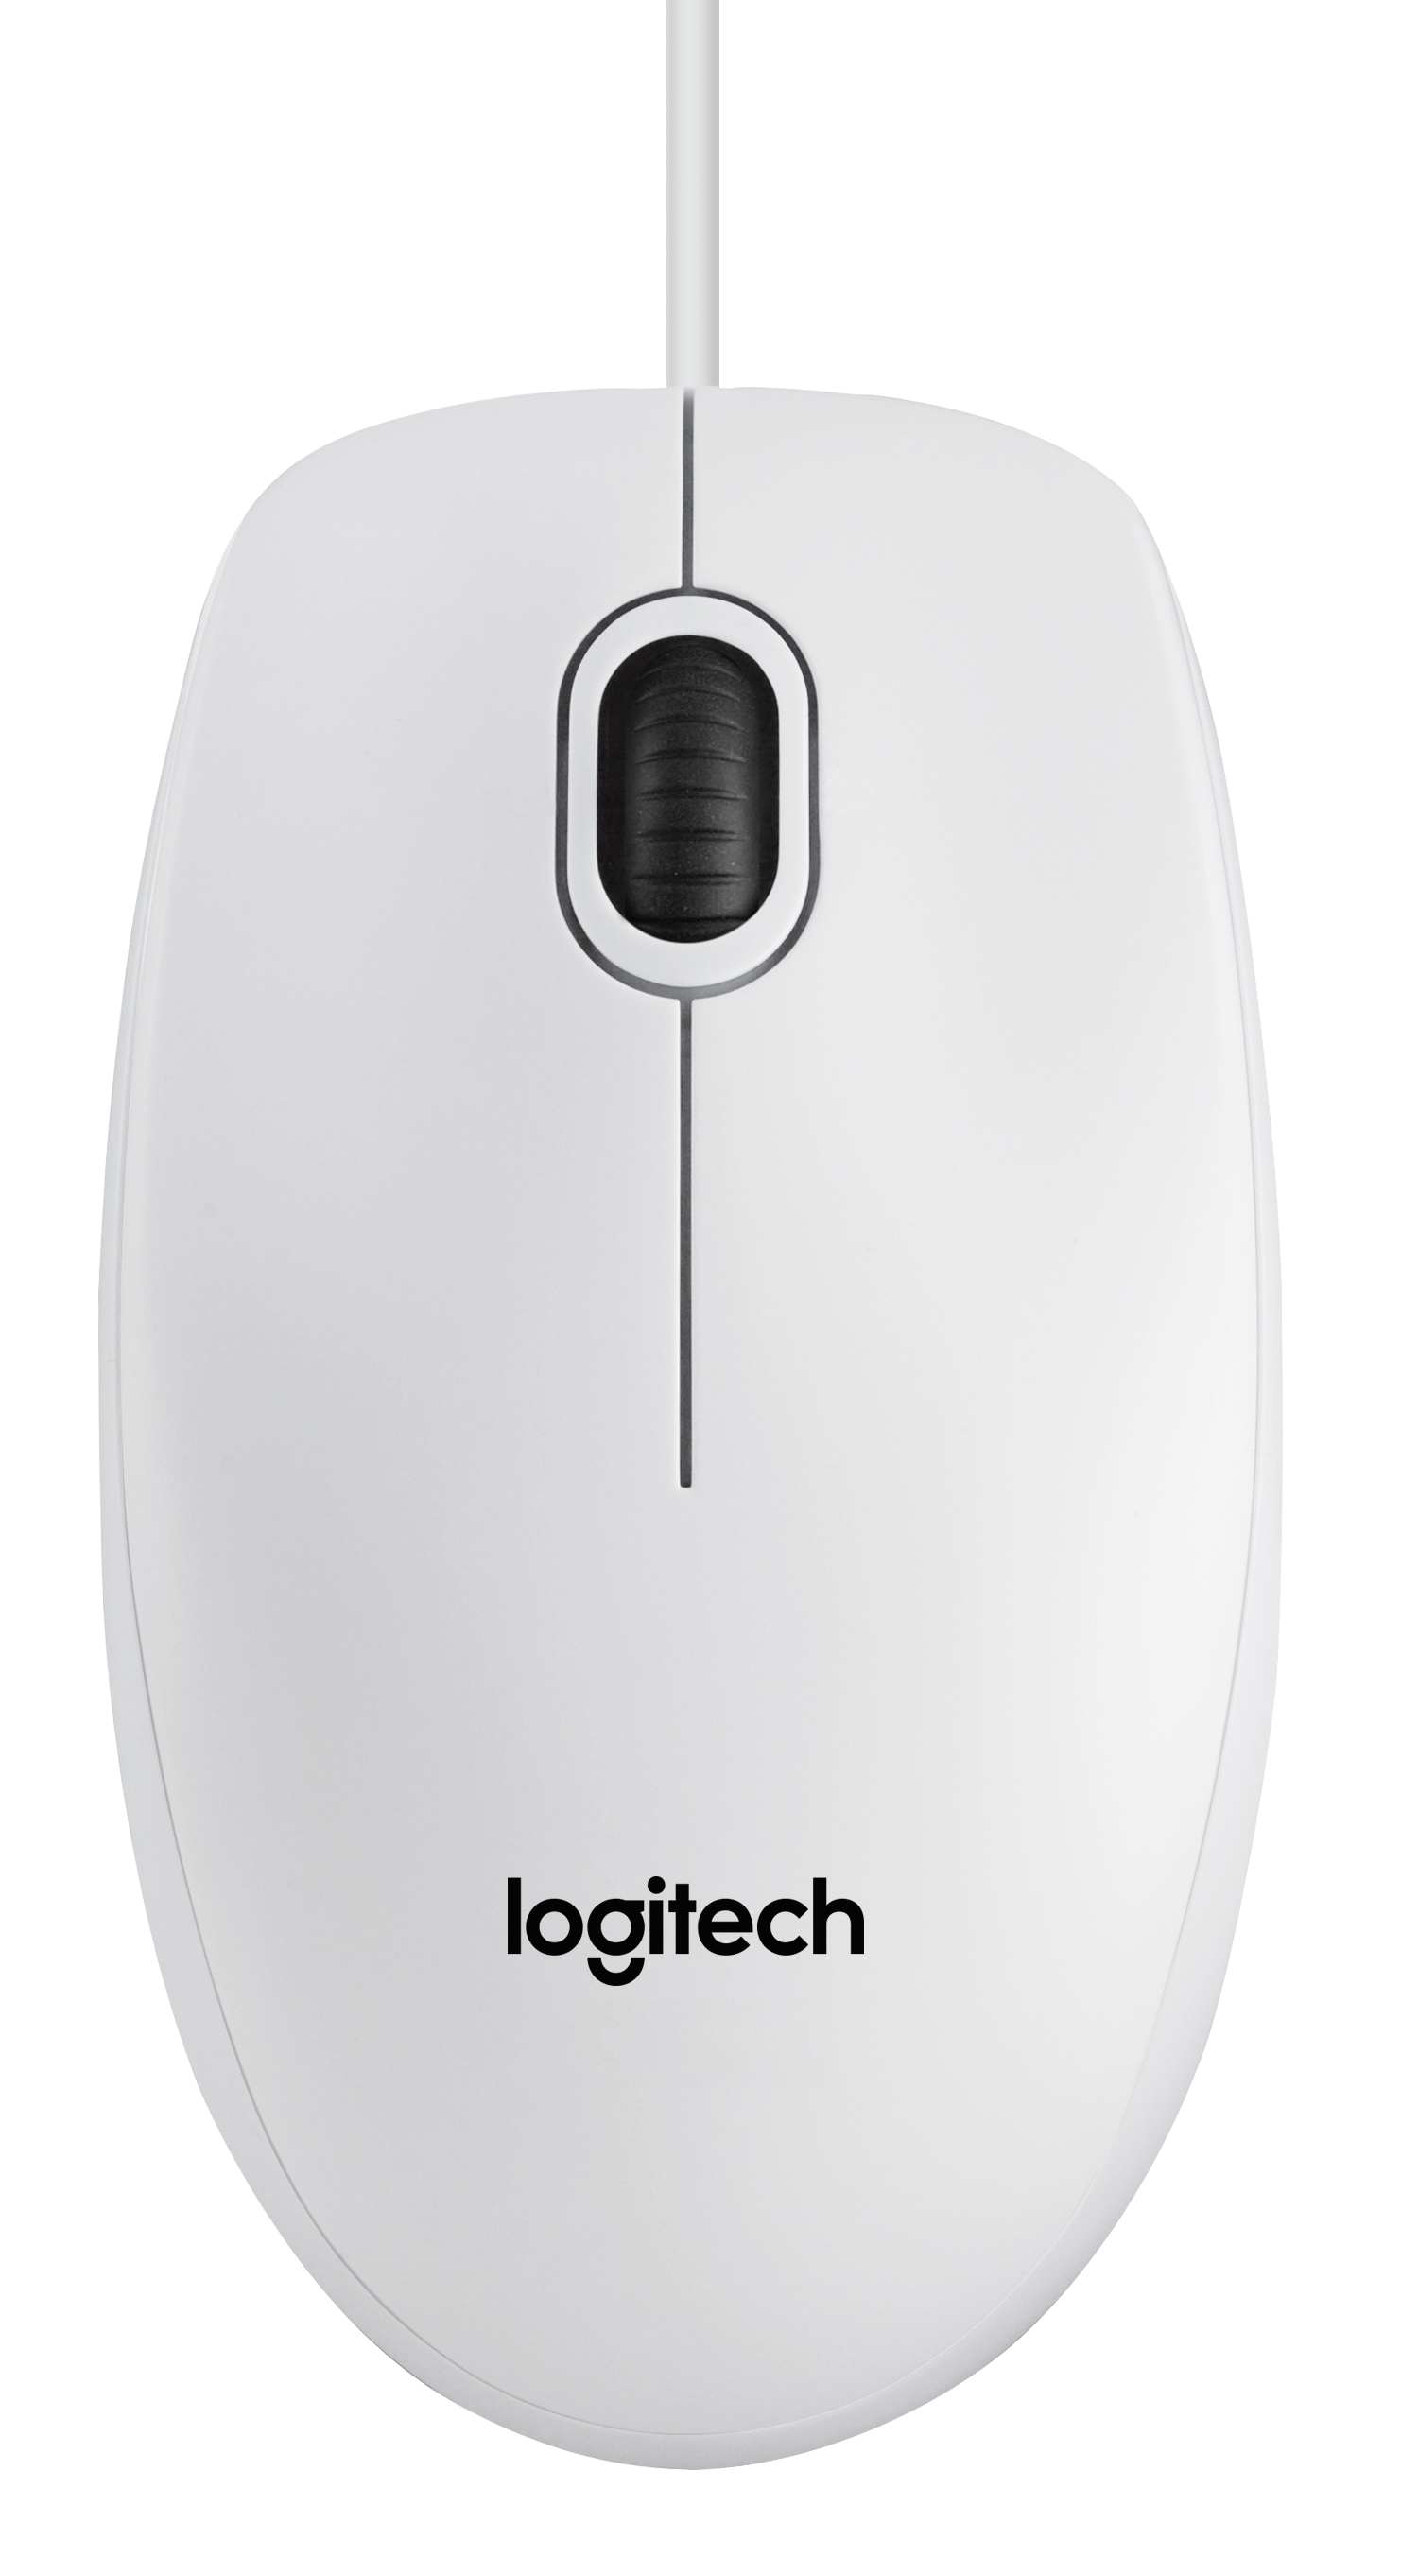 Logitech B100 optical USB Mouse for Business WHITE